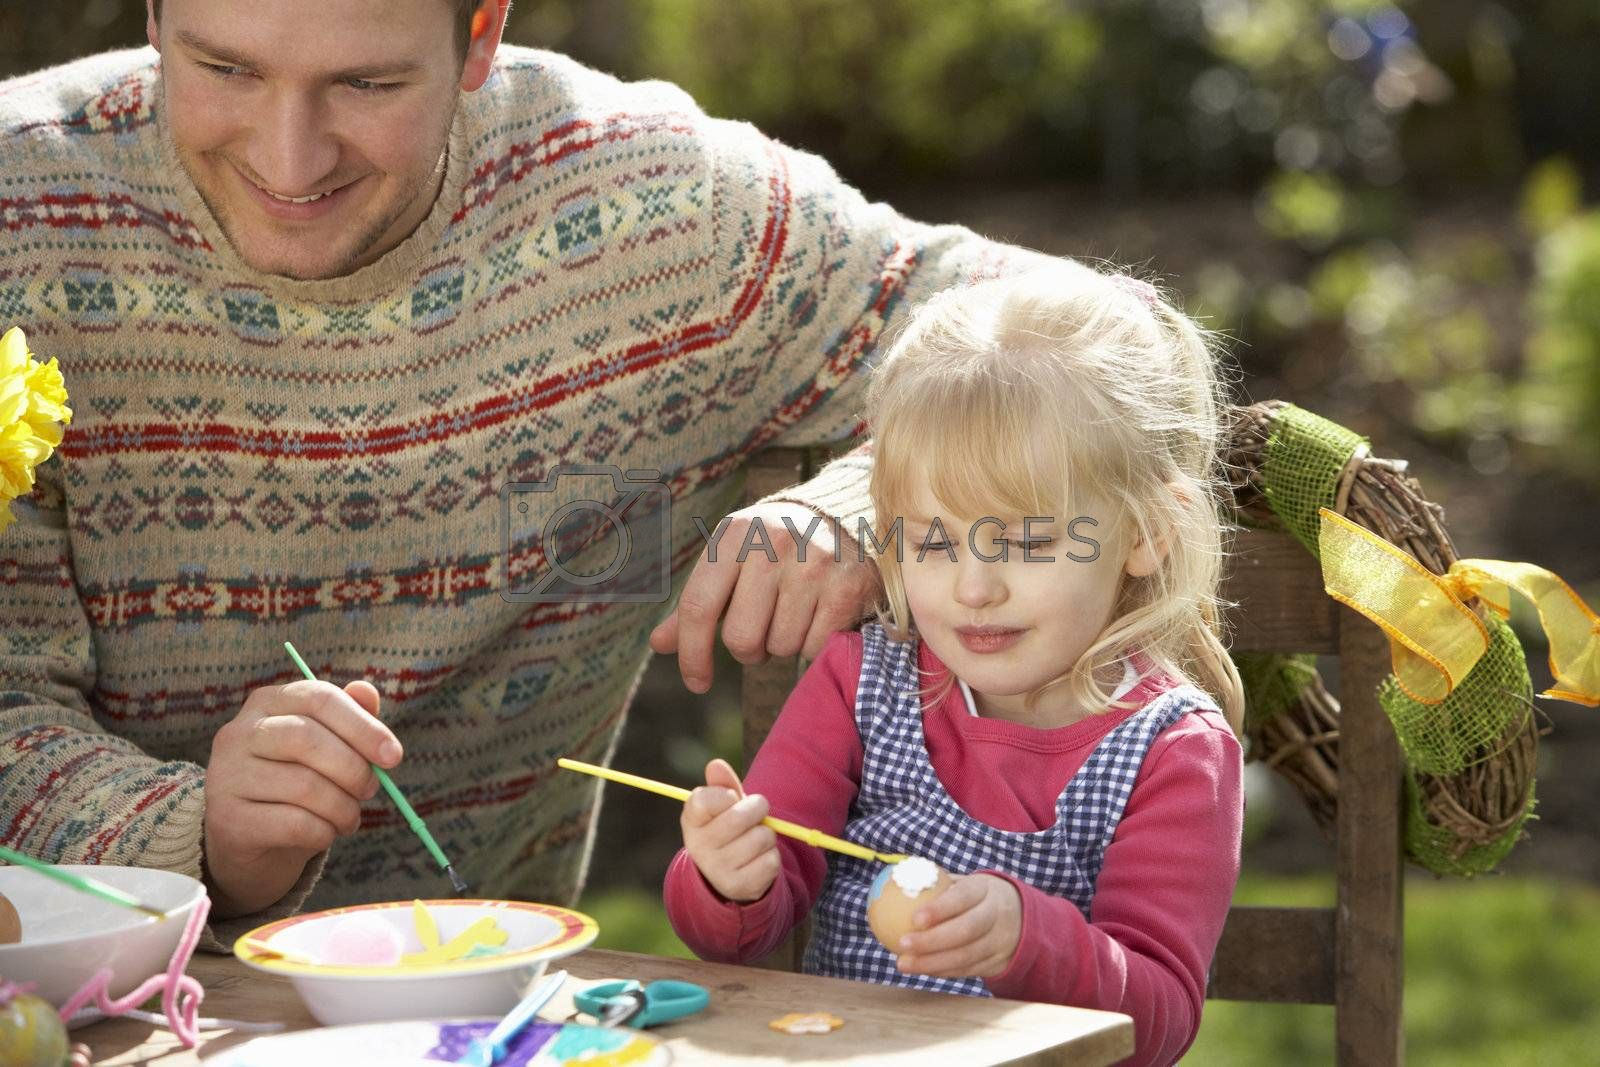 Father And Daughter Decorating Easter Eggs On Table Outdoors by OMG Images